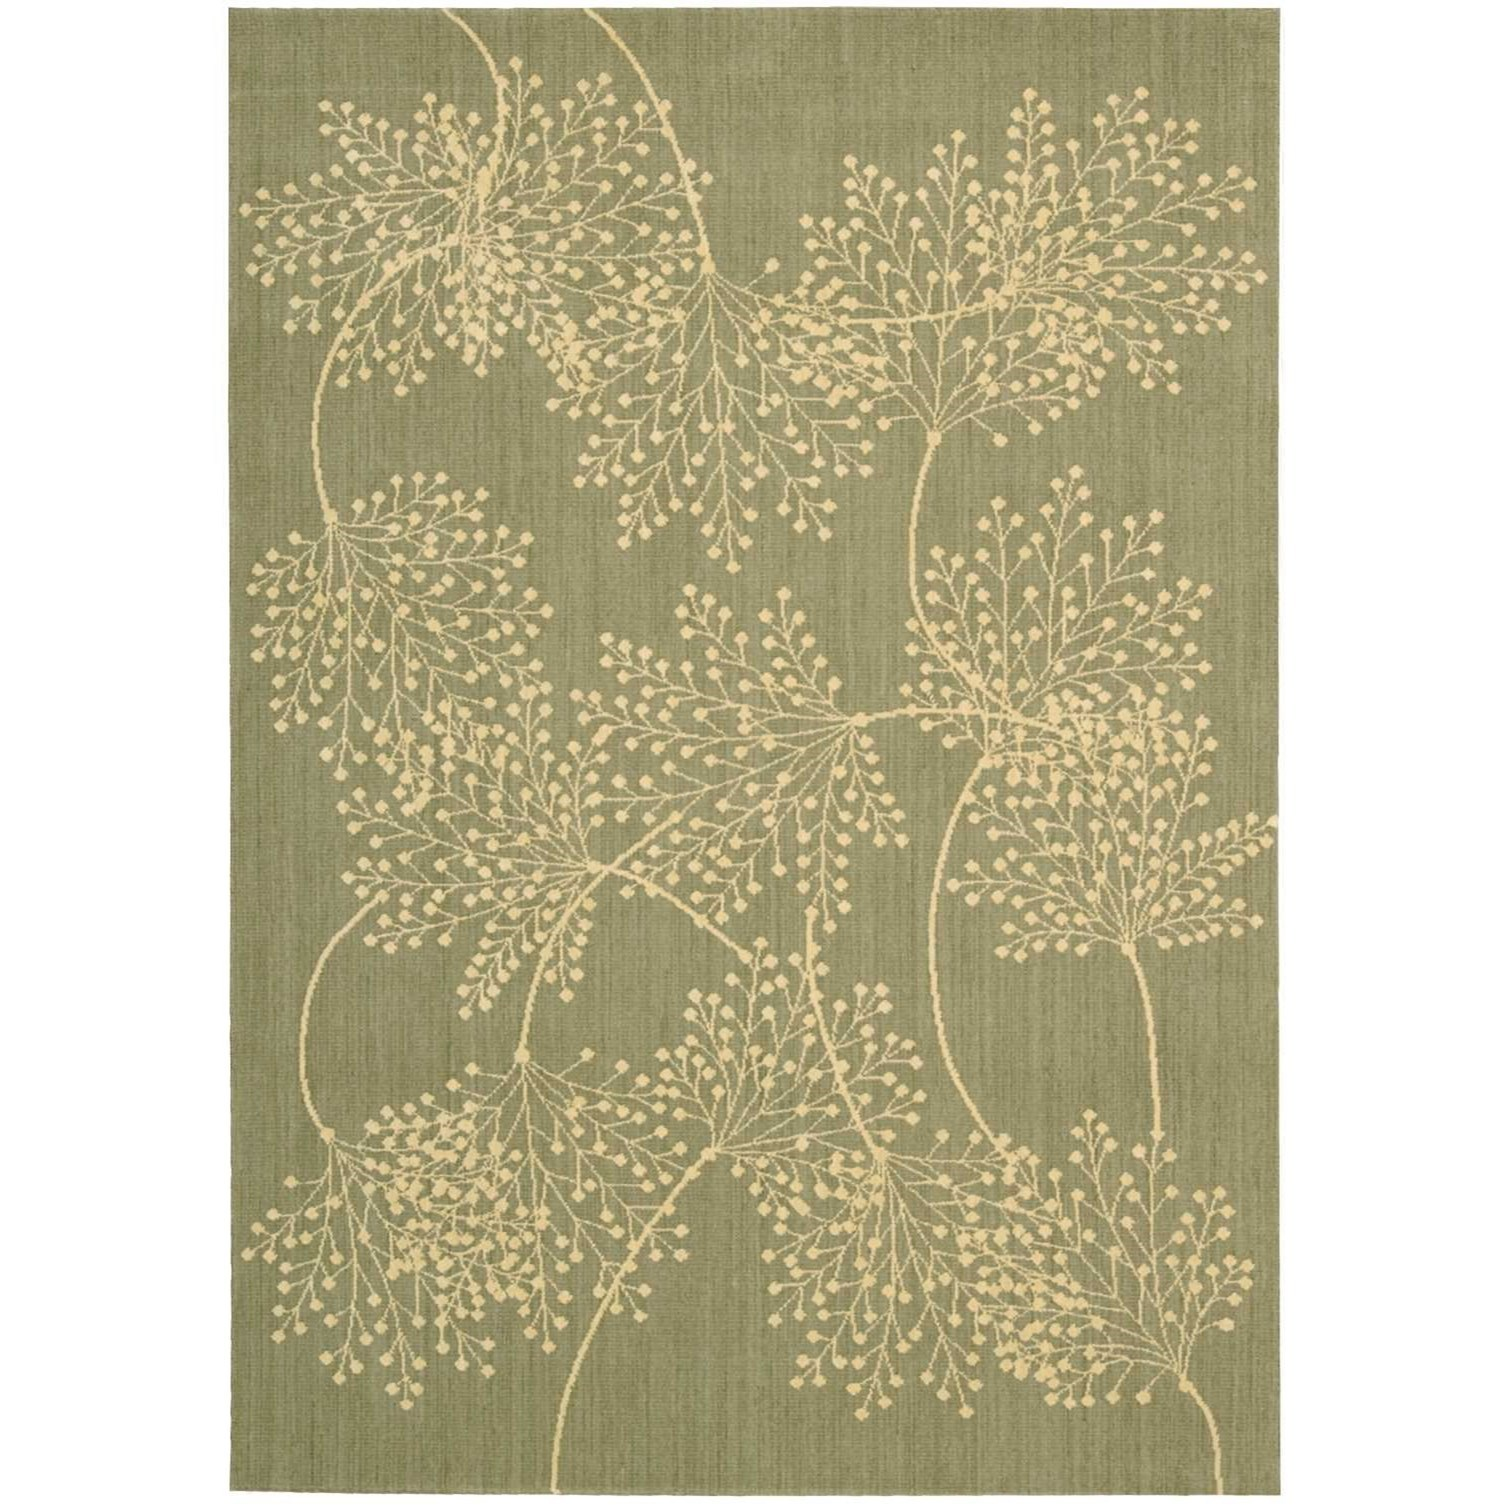 "Capri 5'3"" x 7'5"" Sage Rectangle Rug by Nourison at Home Collections Furniture"